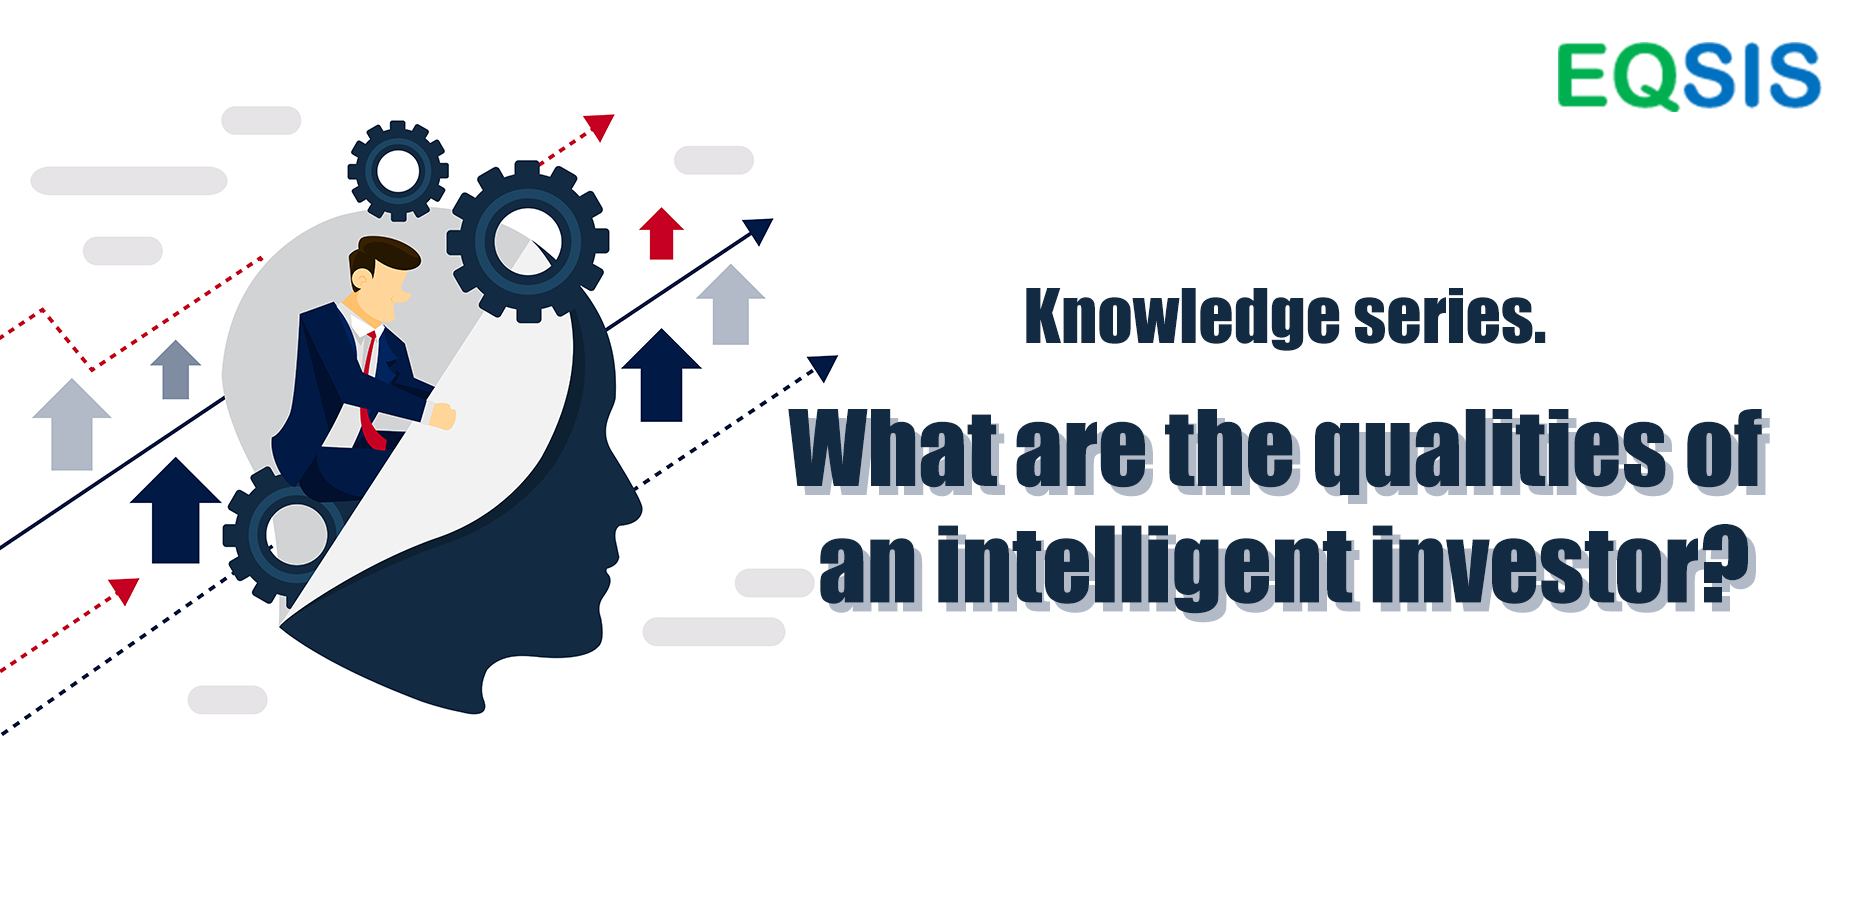 What are the qualities of an Intelligent investor